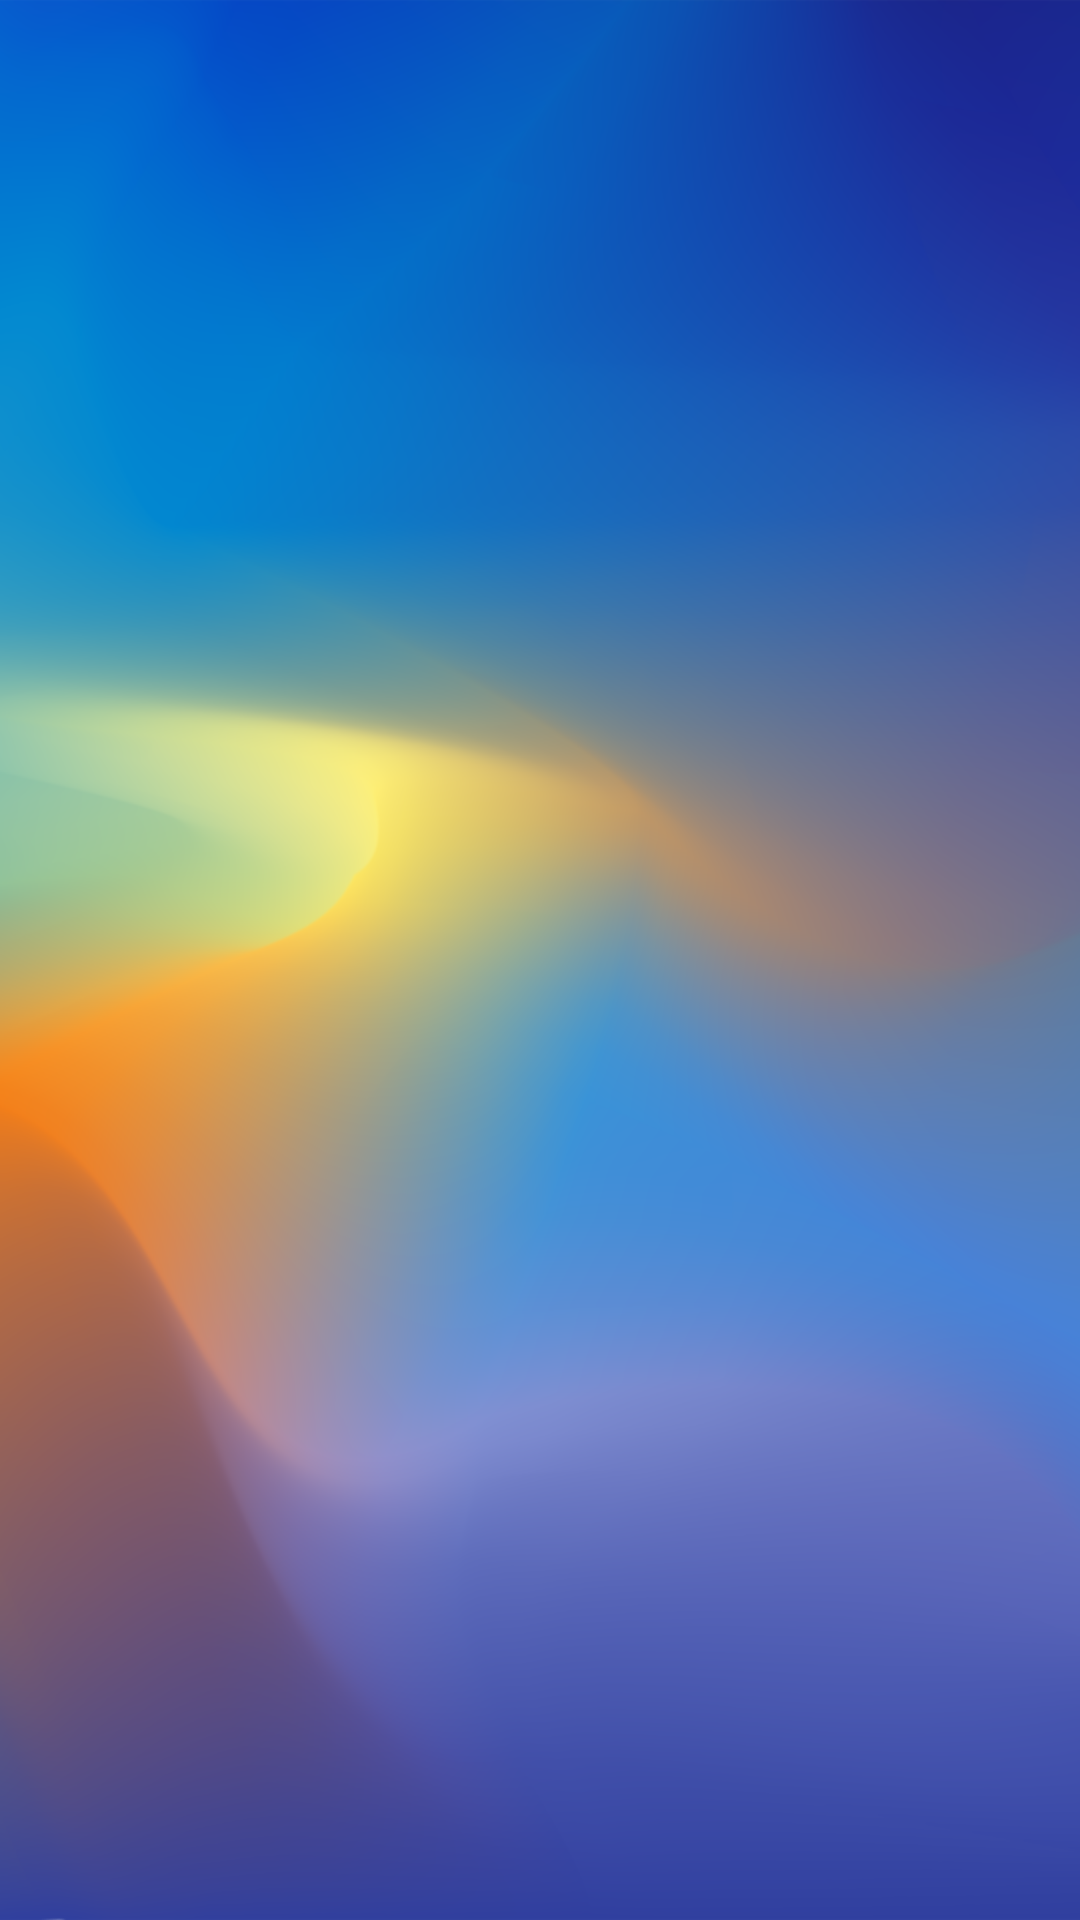 Blue Yellow Gradient Abstract 1080x1920 Wallpaper Orange Wallpaper Cool Wallpapers For Phones Abstract